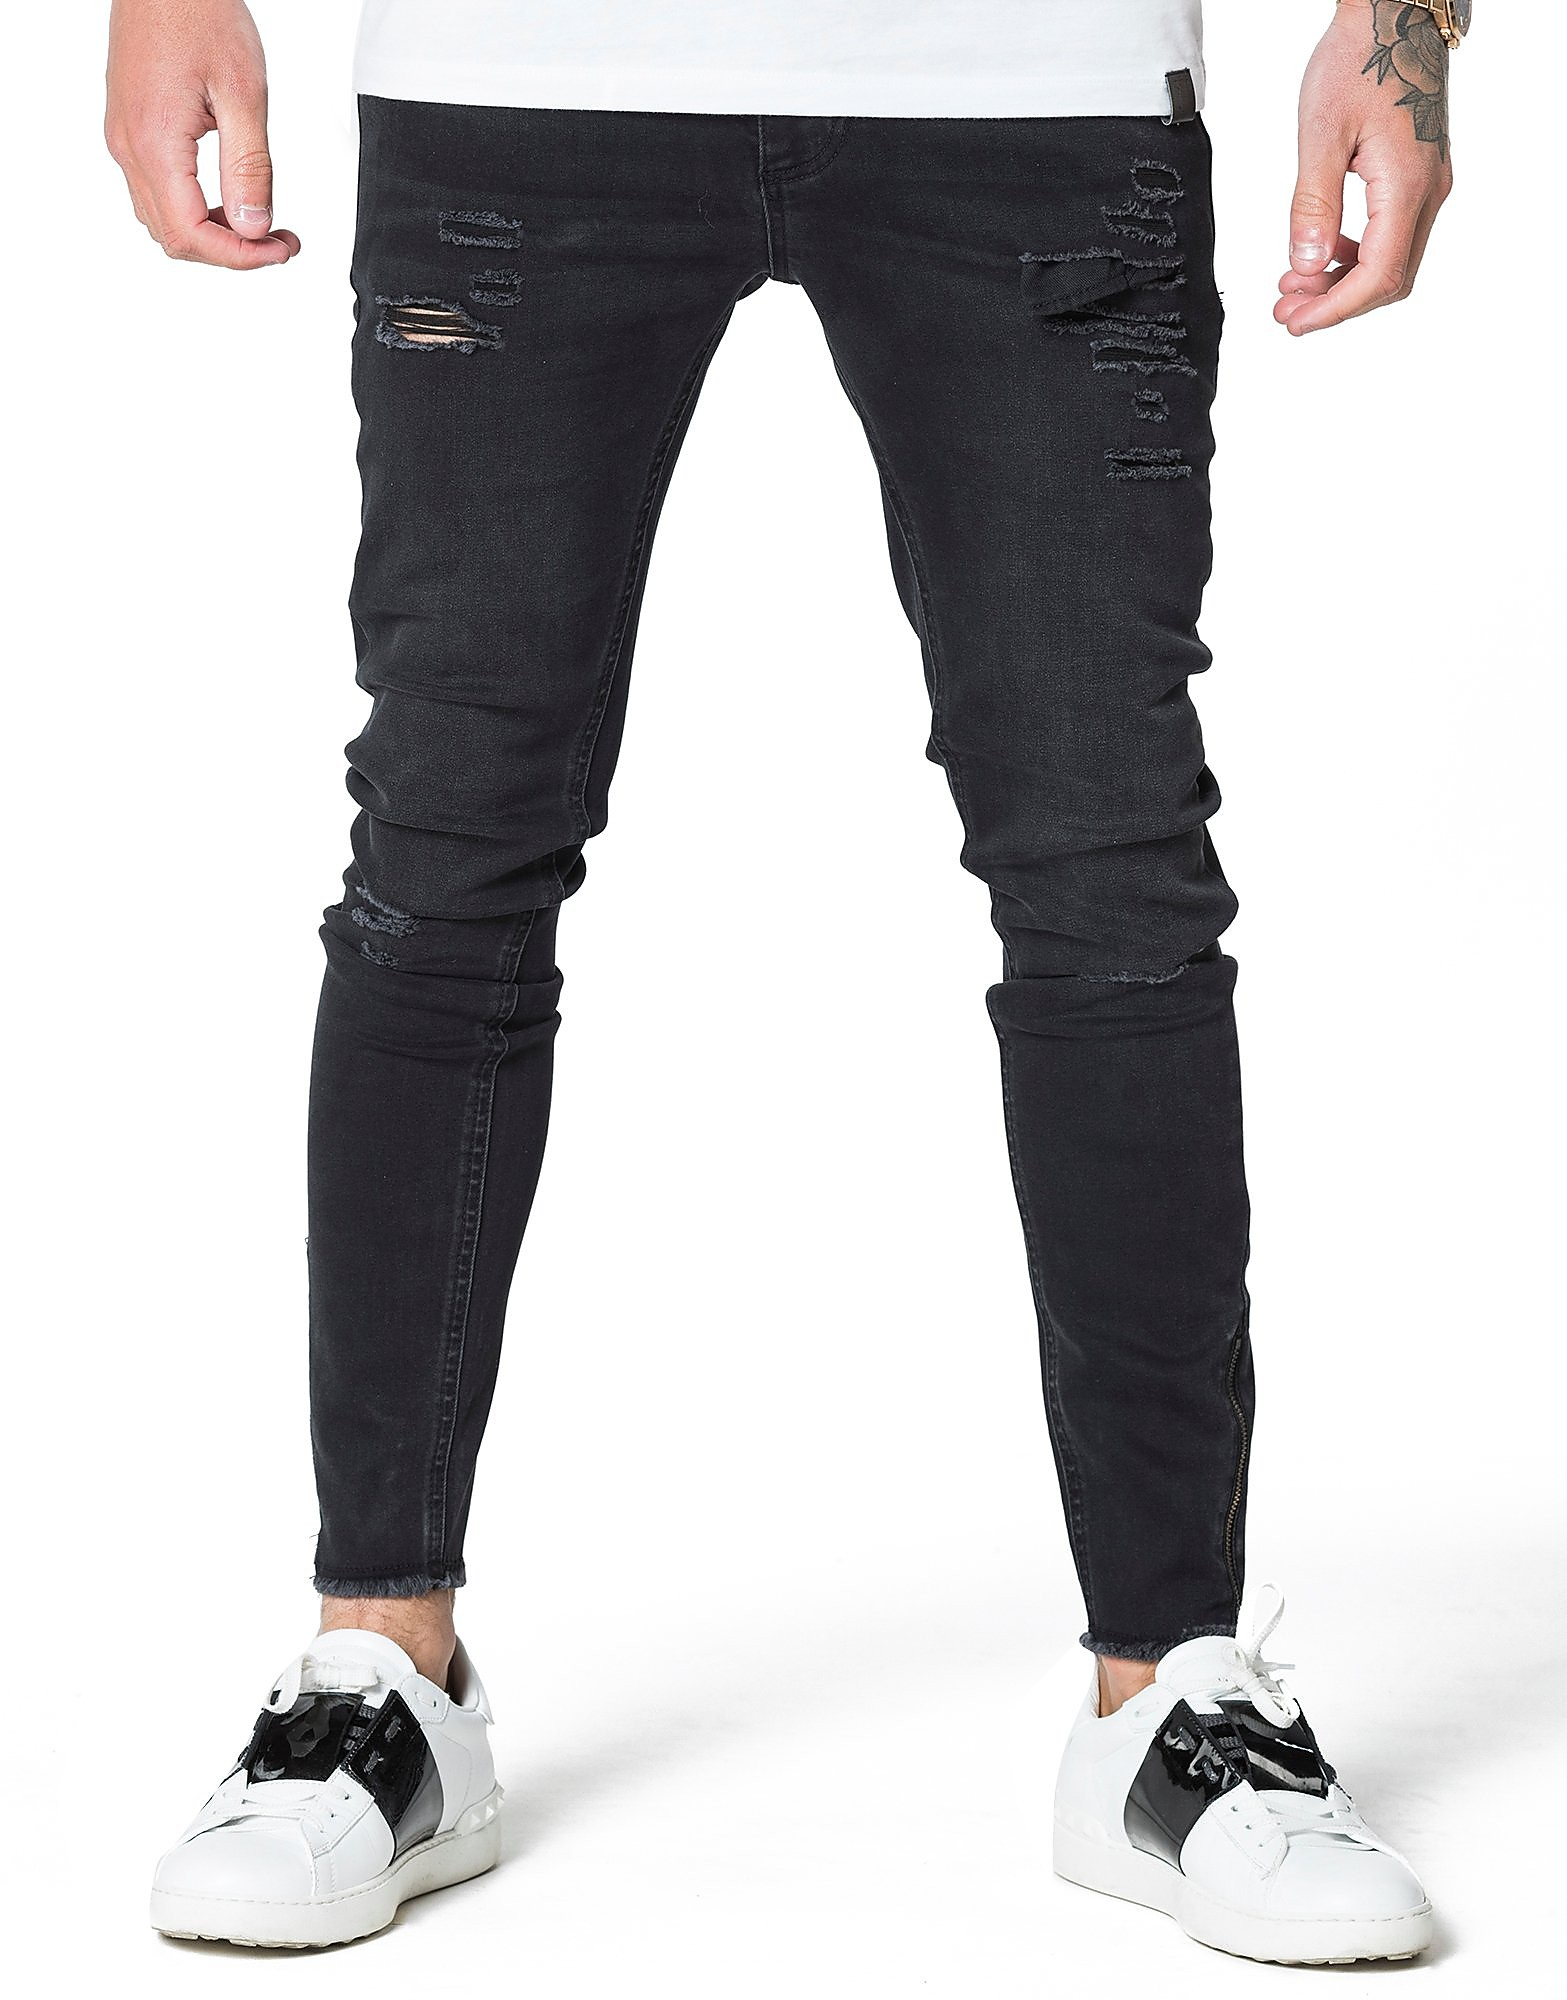 Image de 11 Degrees Ripped Knee Denim Jeans Homme - Black, Black